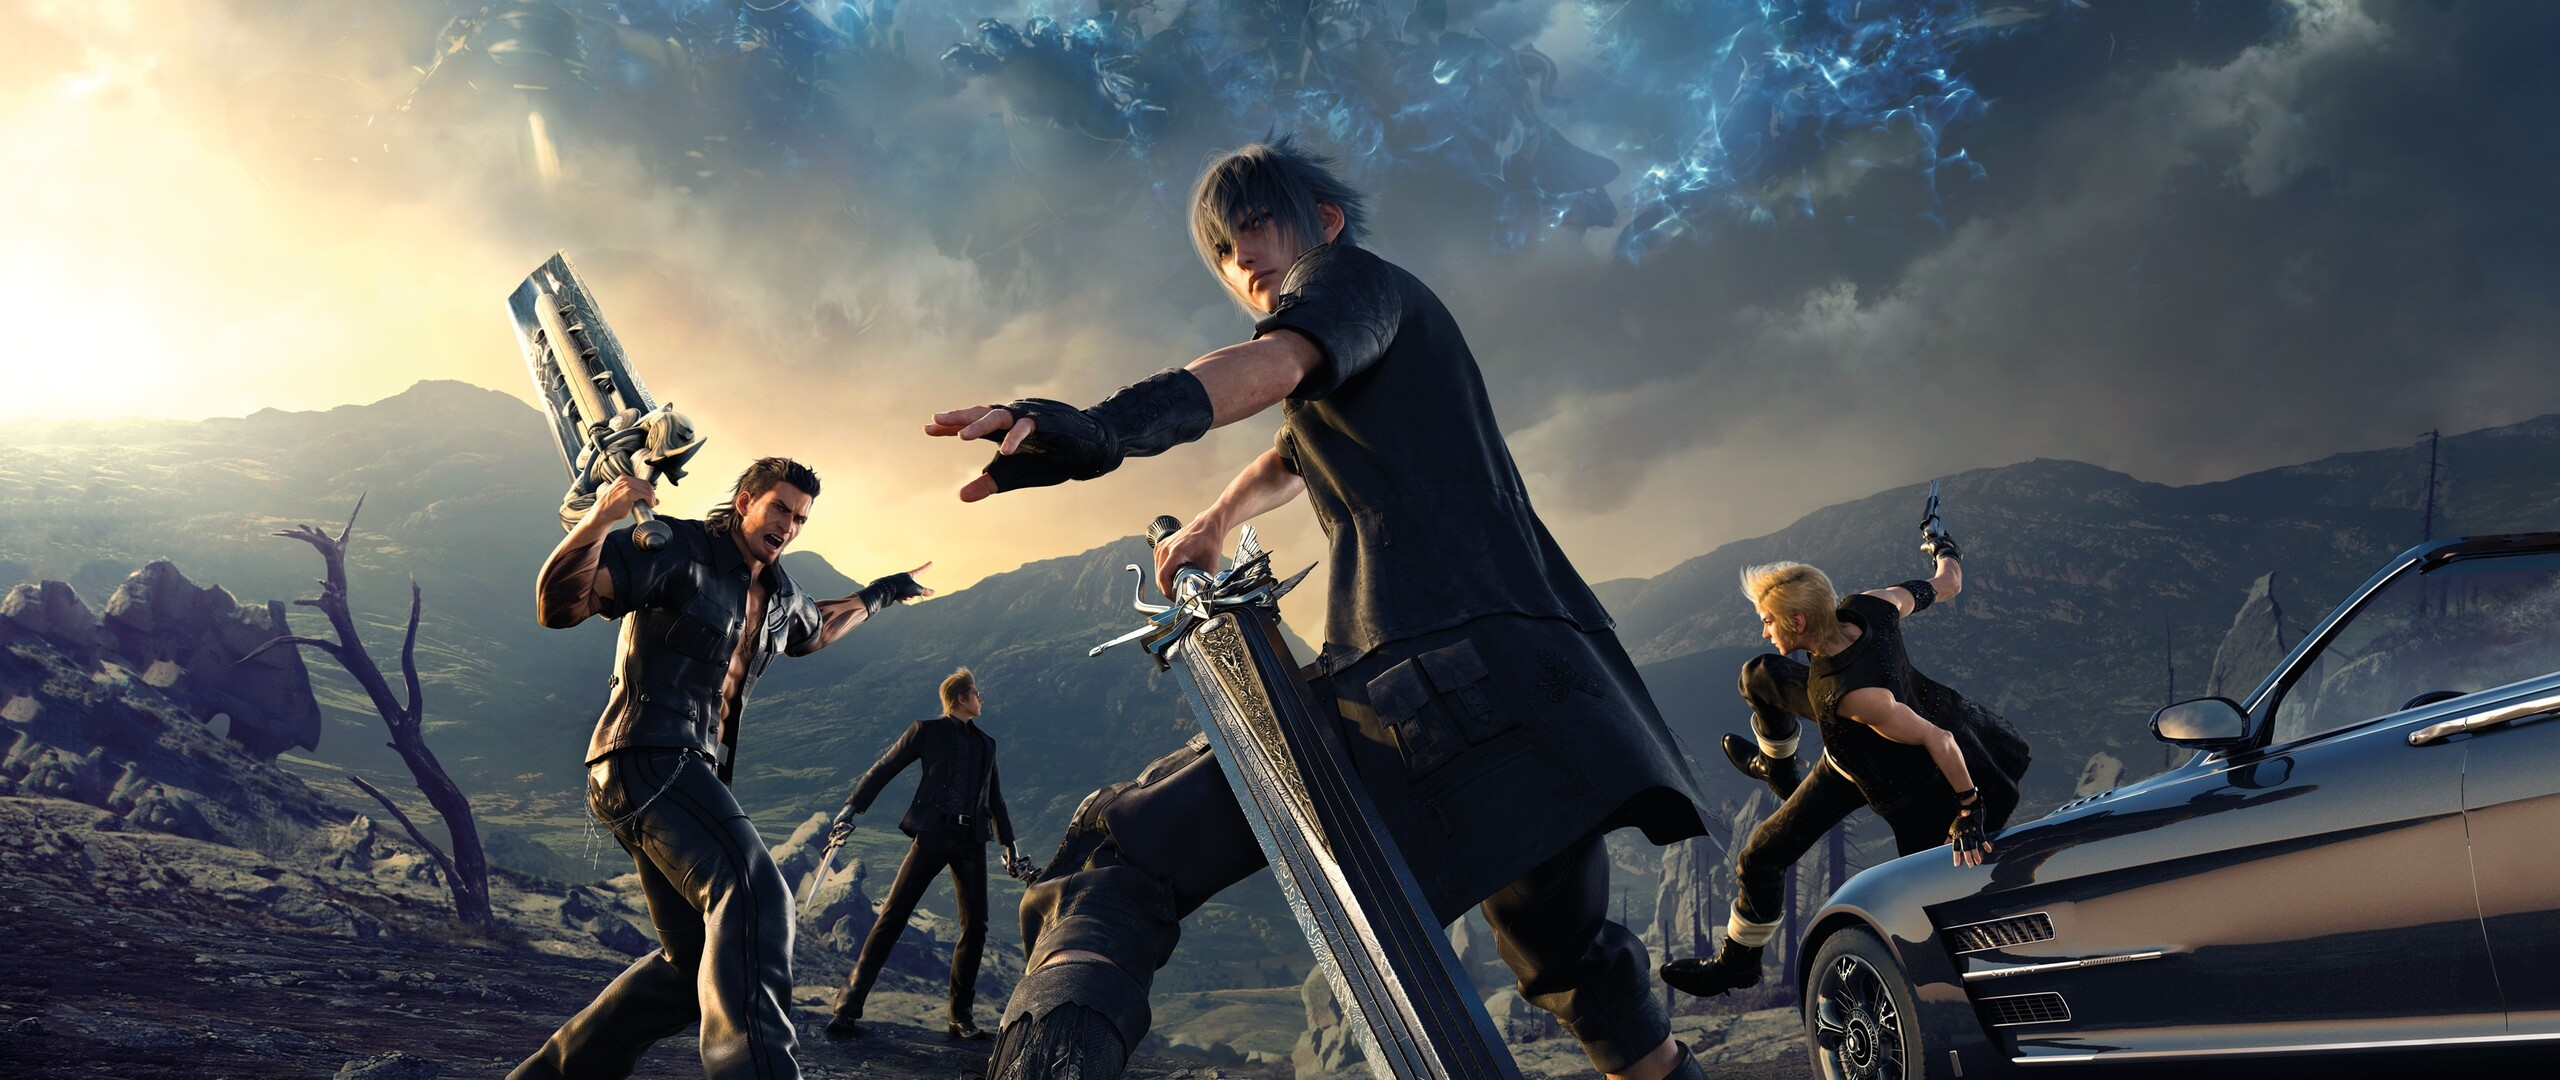 4k Final Fantasy Xv Hd Games 4k Wallpapers Images: 2560x1080 Final Fantasy XV PS4 2560x1080 Resolution HD 4k